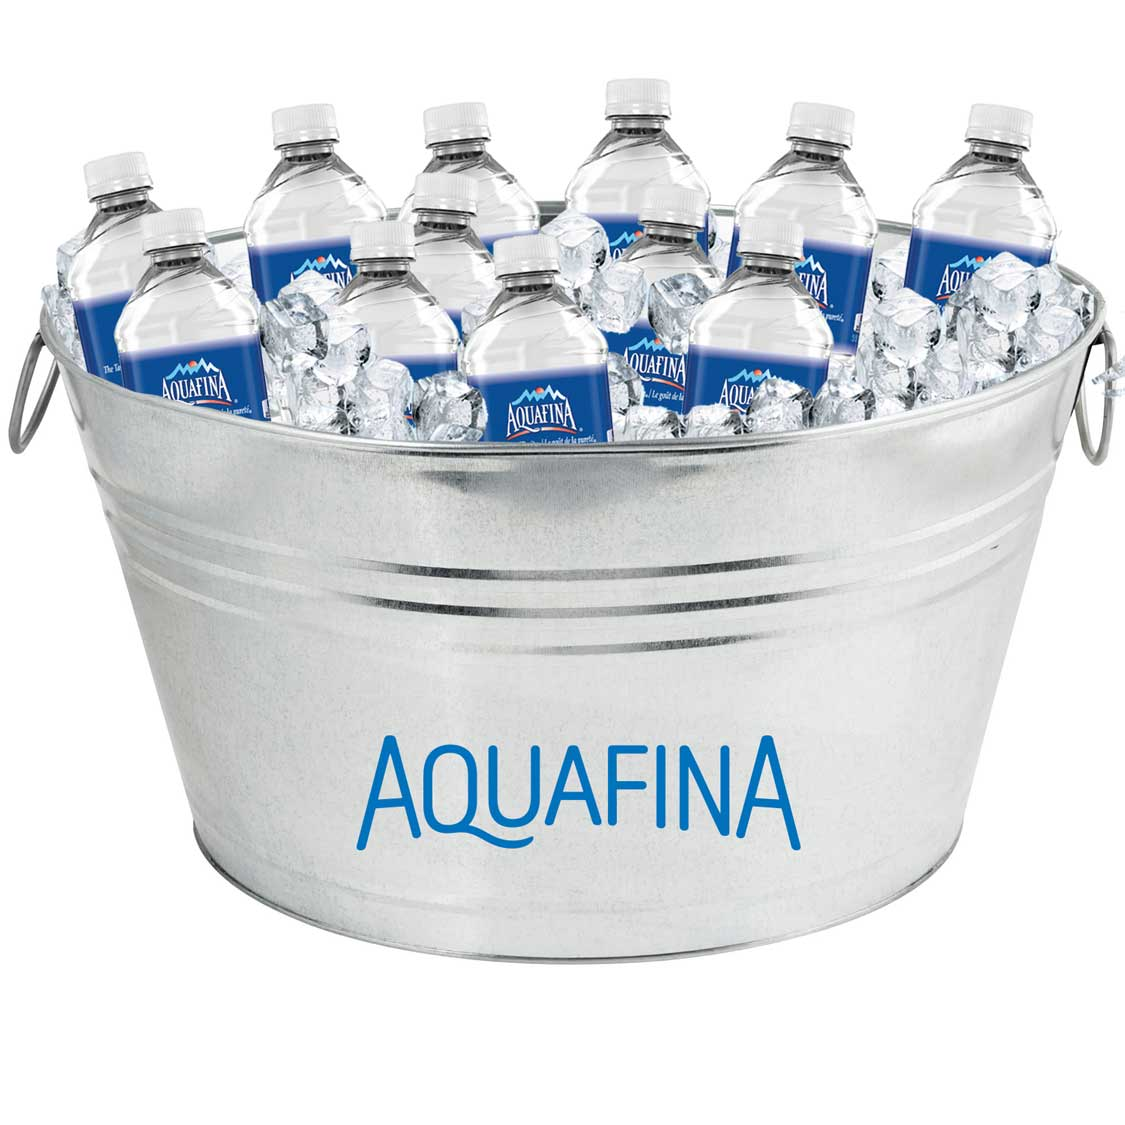 Oval Galvanized Metal Tub - Aquafina